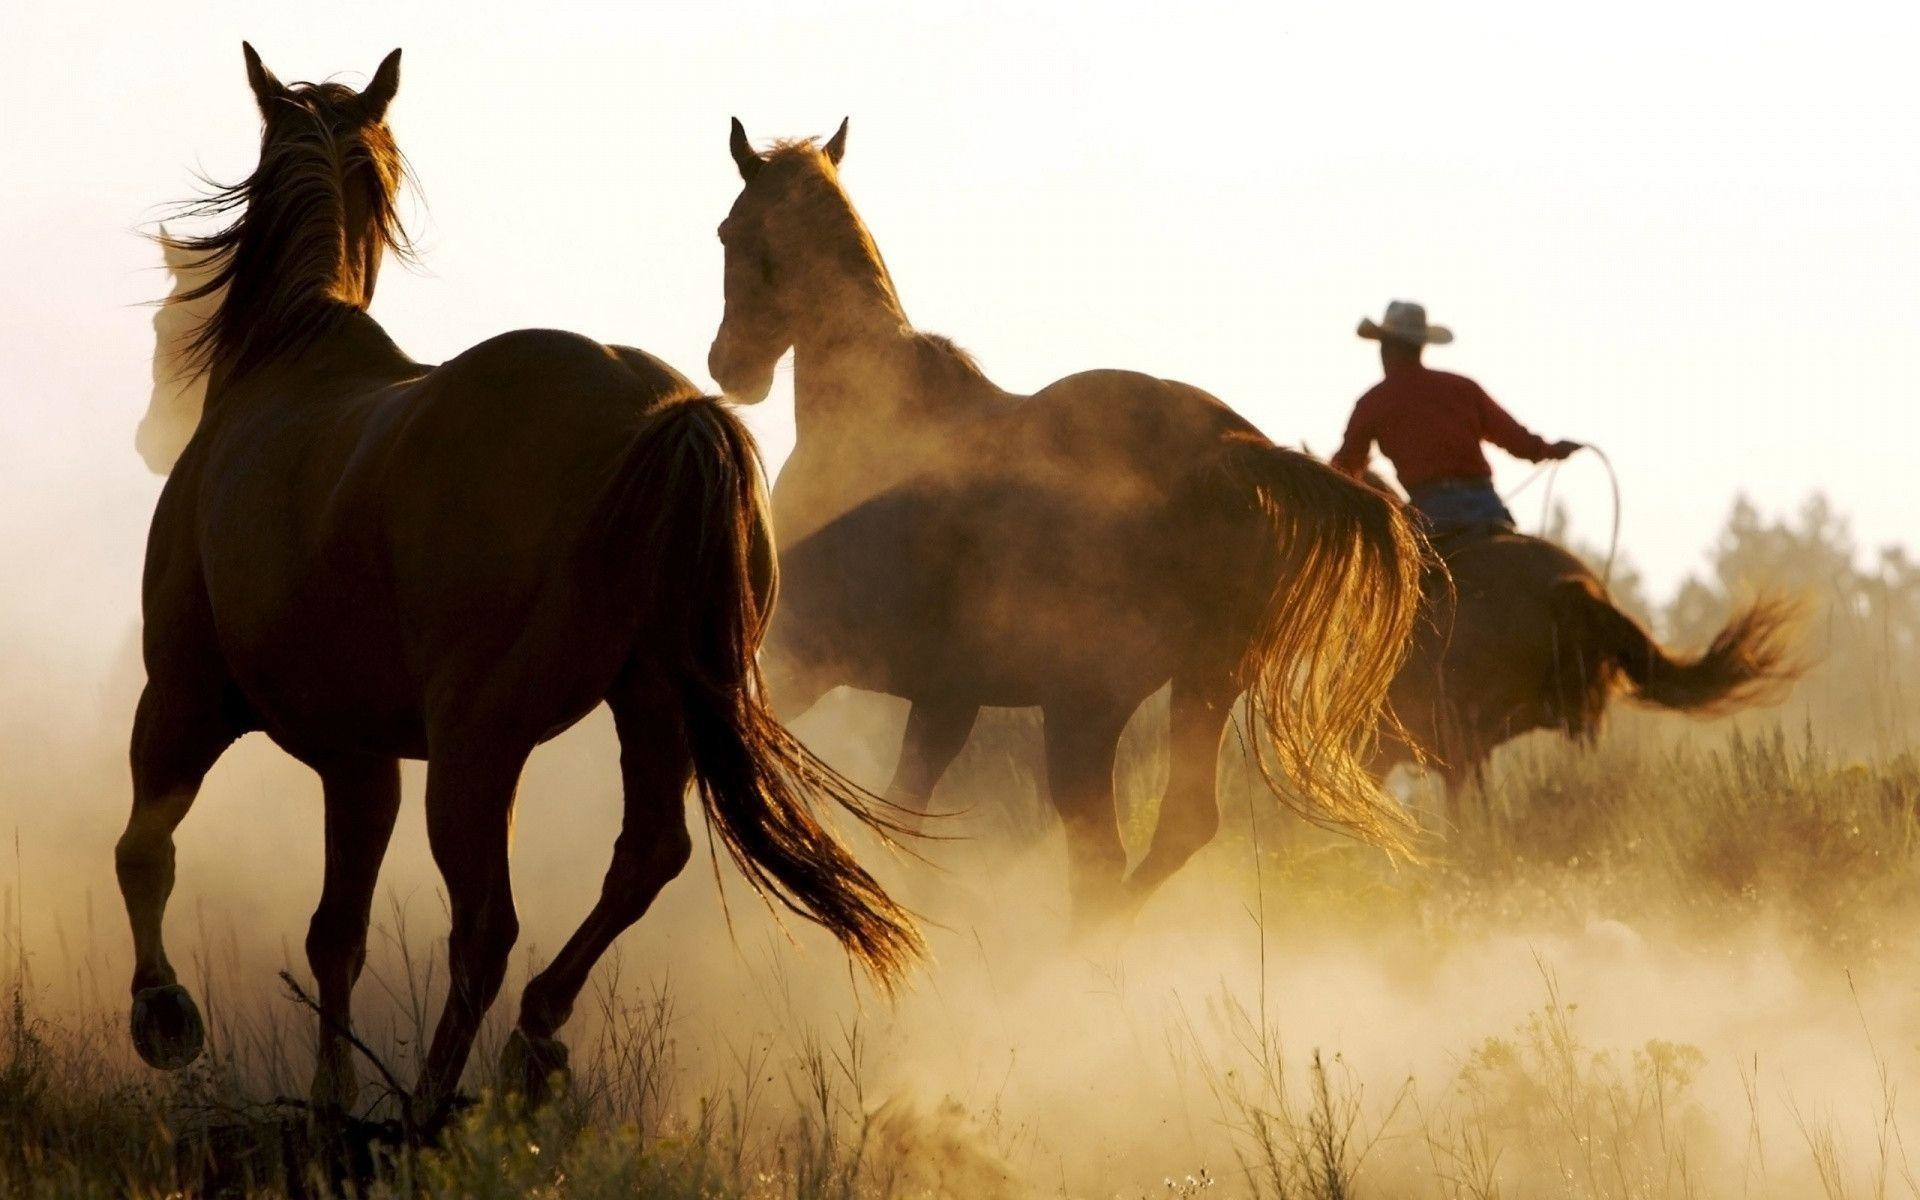 1920x1200 1920x1200 Wild Horses and Cowboy desktop PC and Mac wallpaper